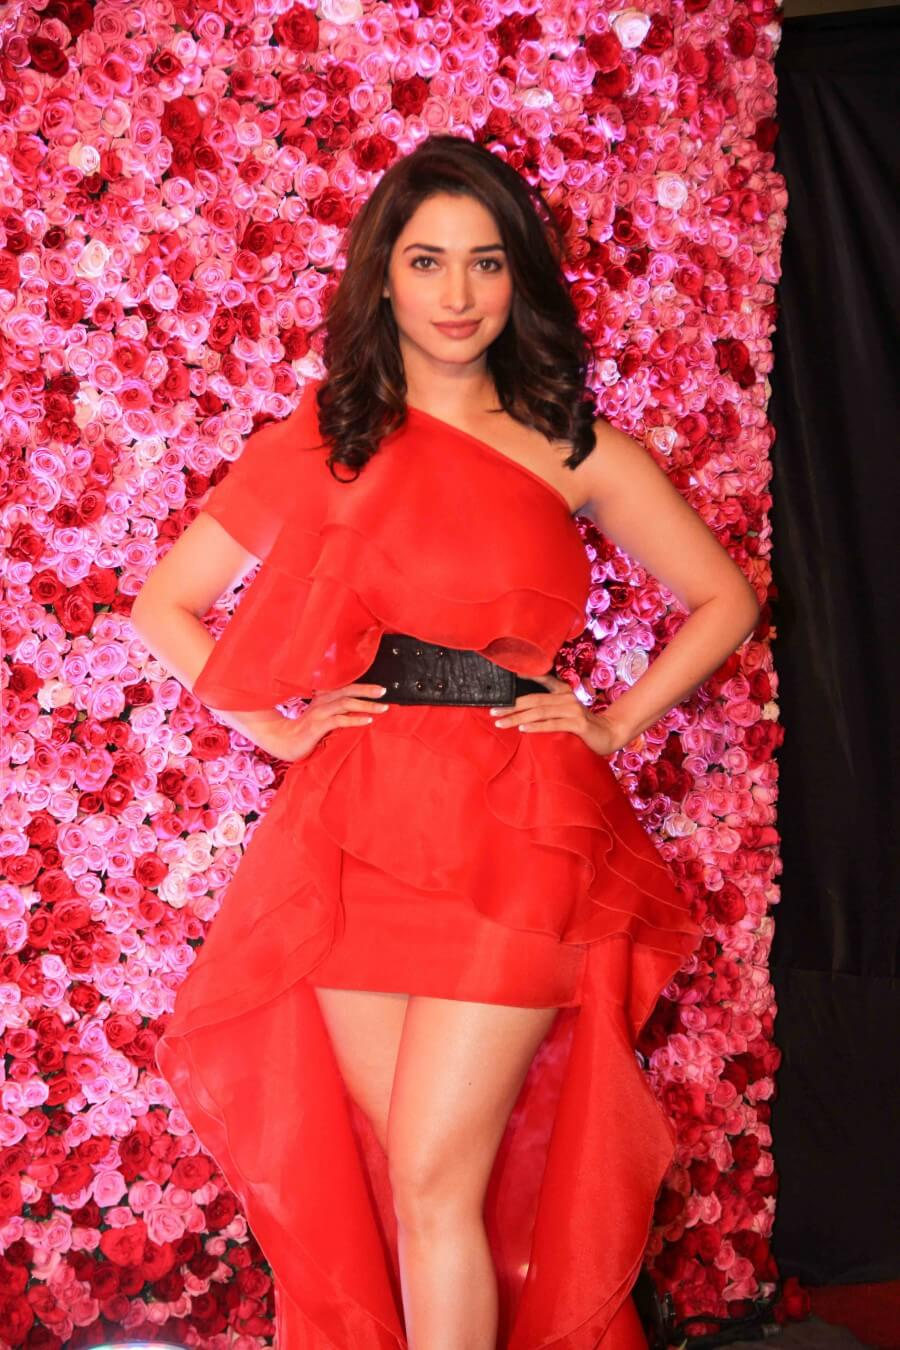 Tamannaah Bhatia Photos(images), Height, Biography, Movies, Date Of Birth, House, Details, Marriage, Boyfriend, Net Worth, Education, Instagram, Facebook, Twitter, Wiki, Imdb, Youtube (21)